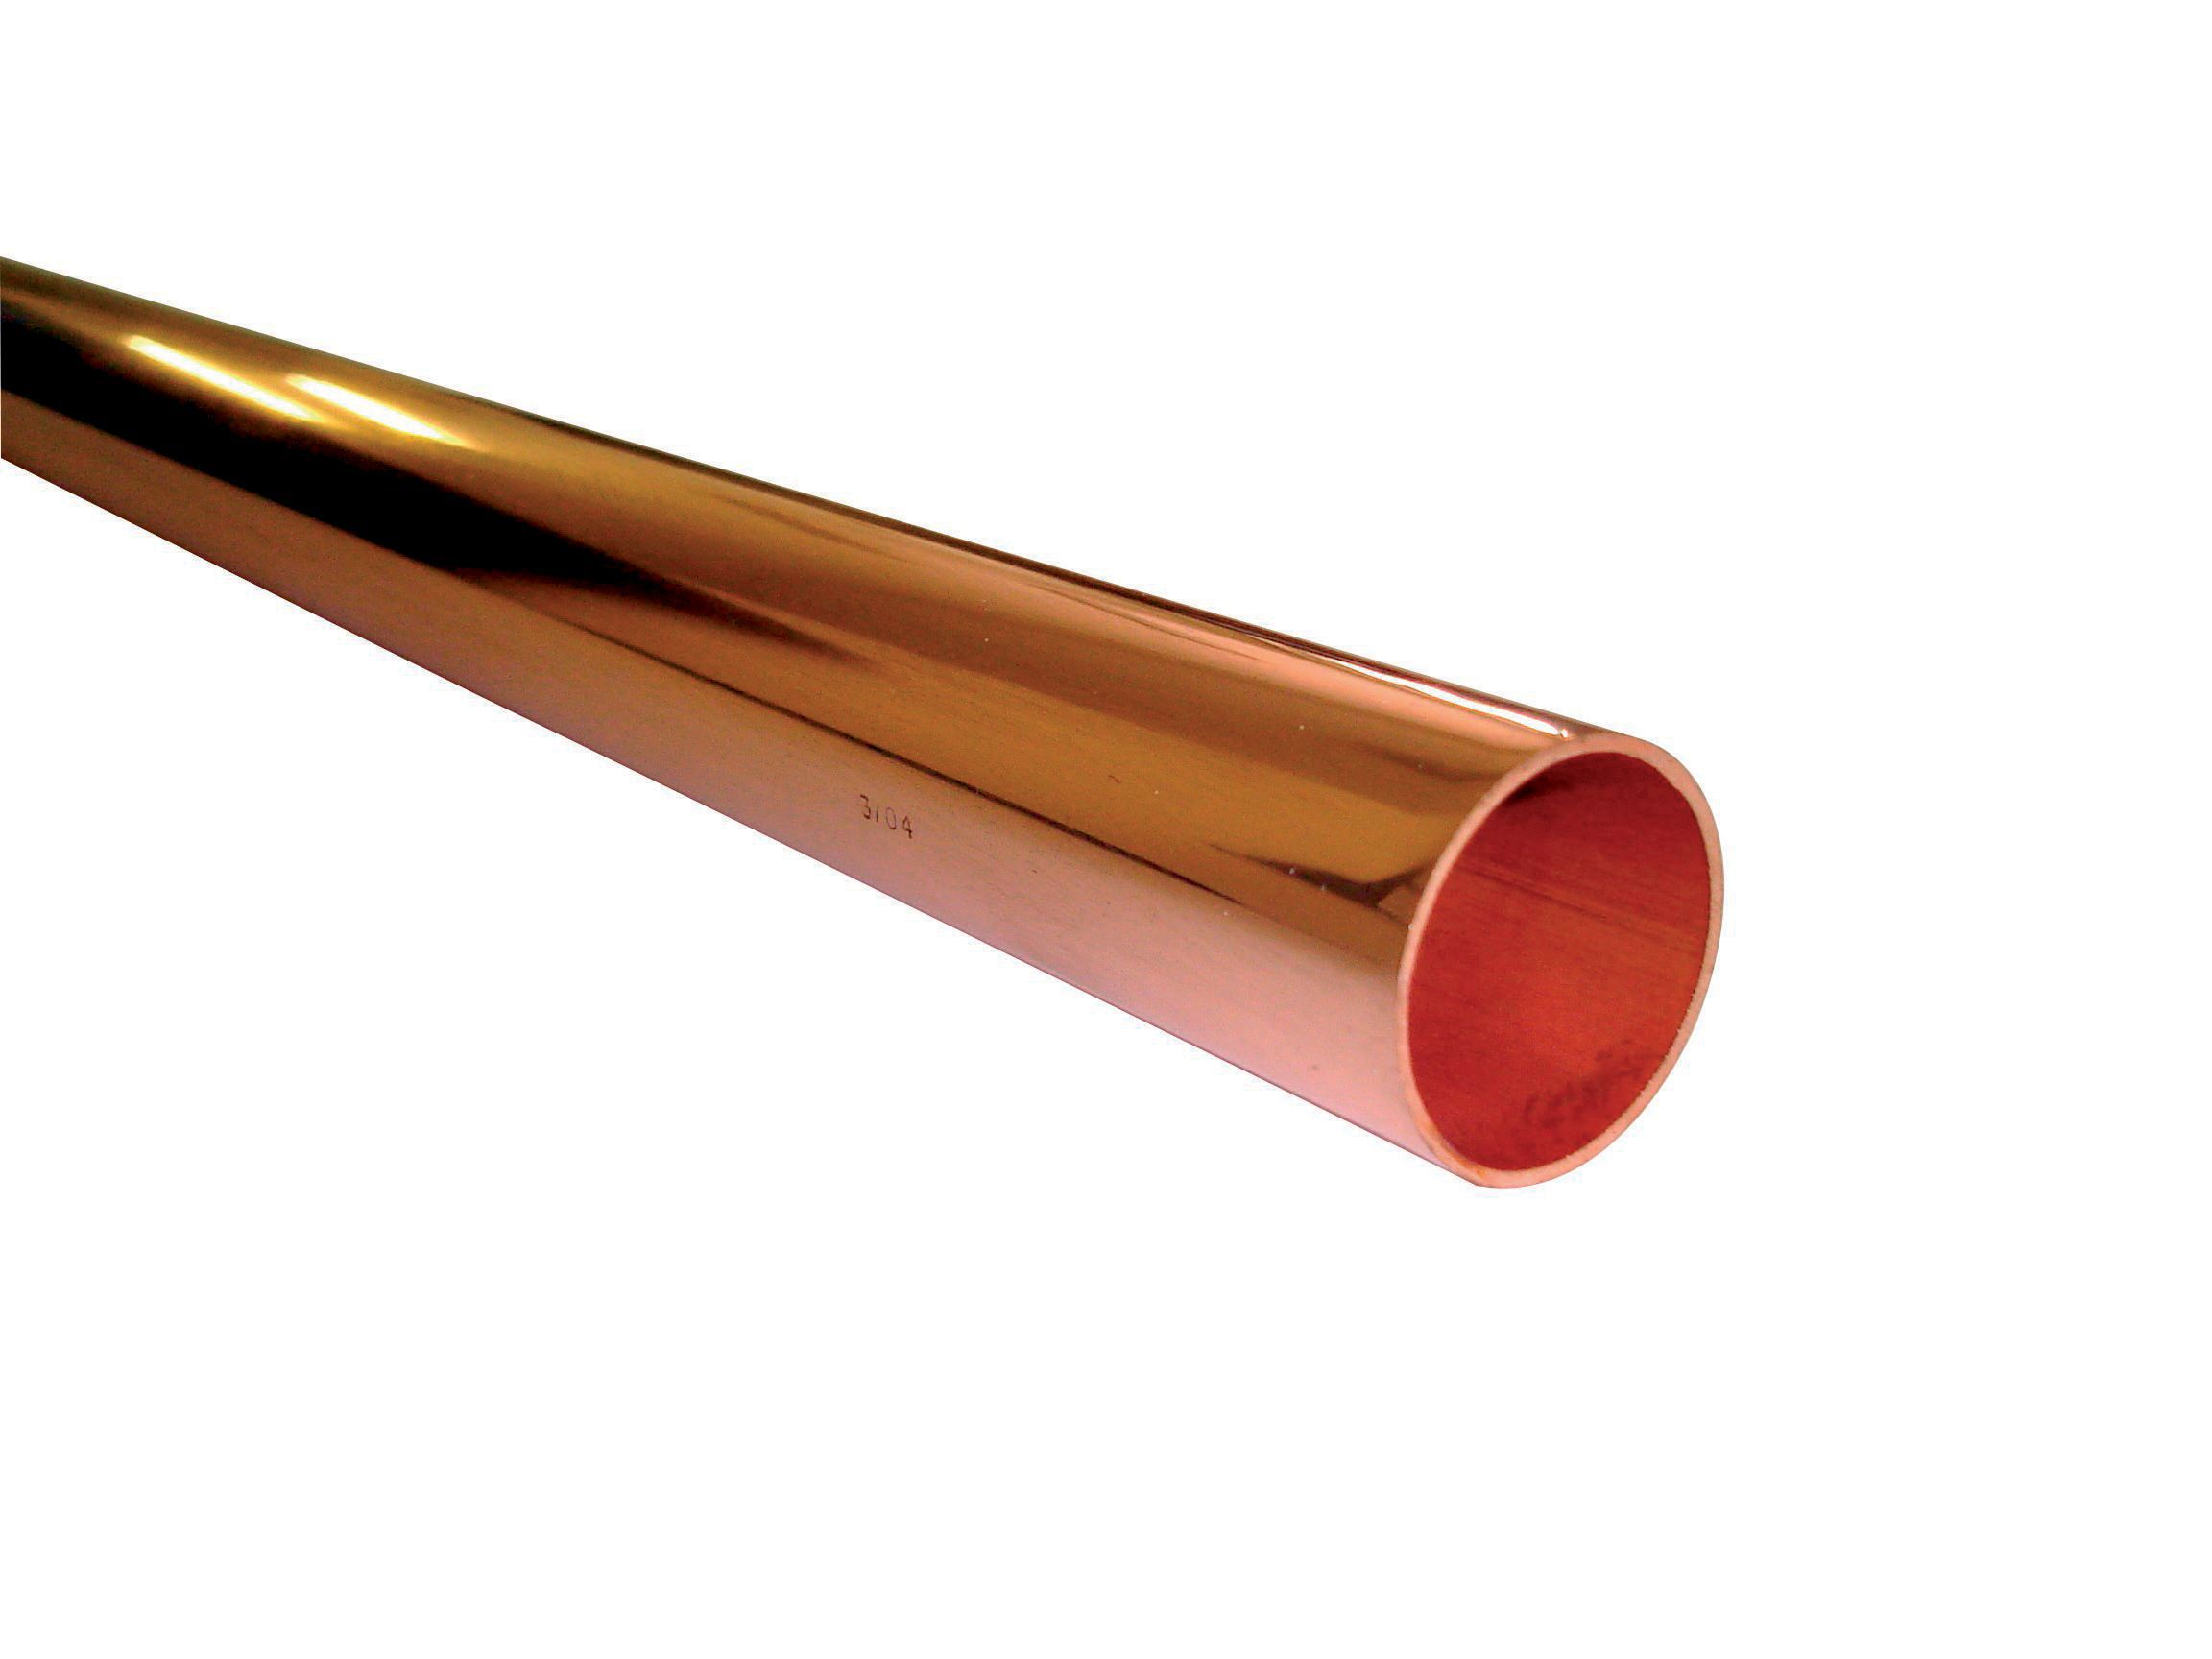 Wednesbury Compression Copper Copper Tube Dia22mm L2M  : 503457900249801c from www.diy.com size 2304 x 1728 jpeg 115kB